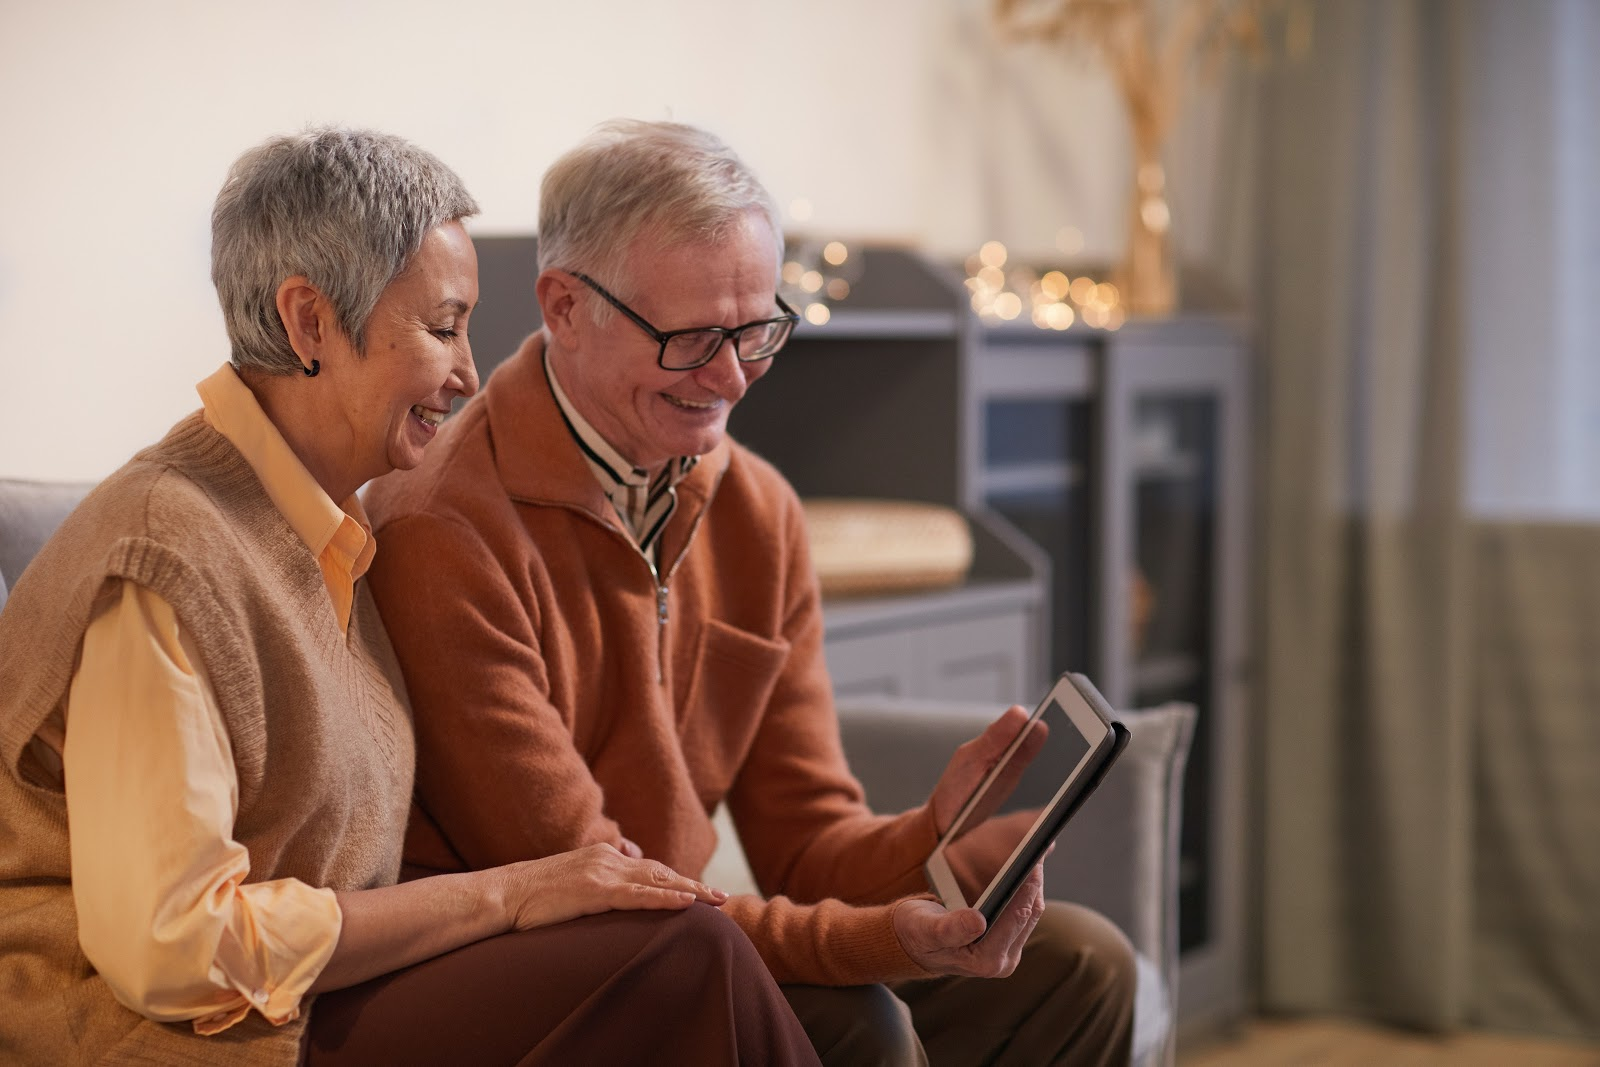 5 Granny Flat Housing Benefits for Aging Parents